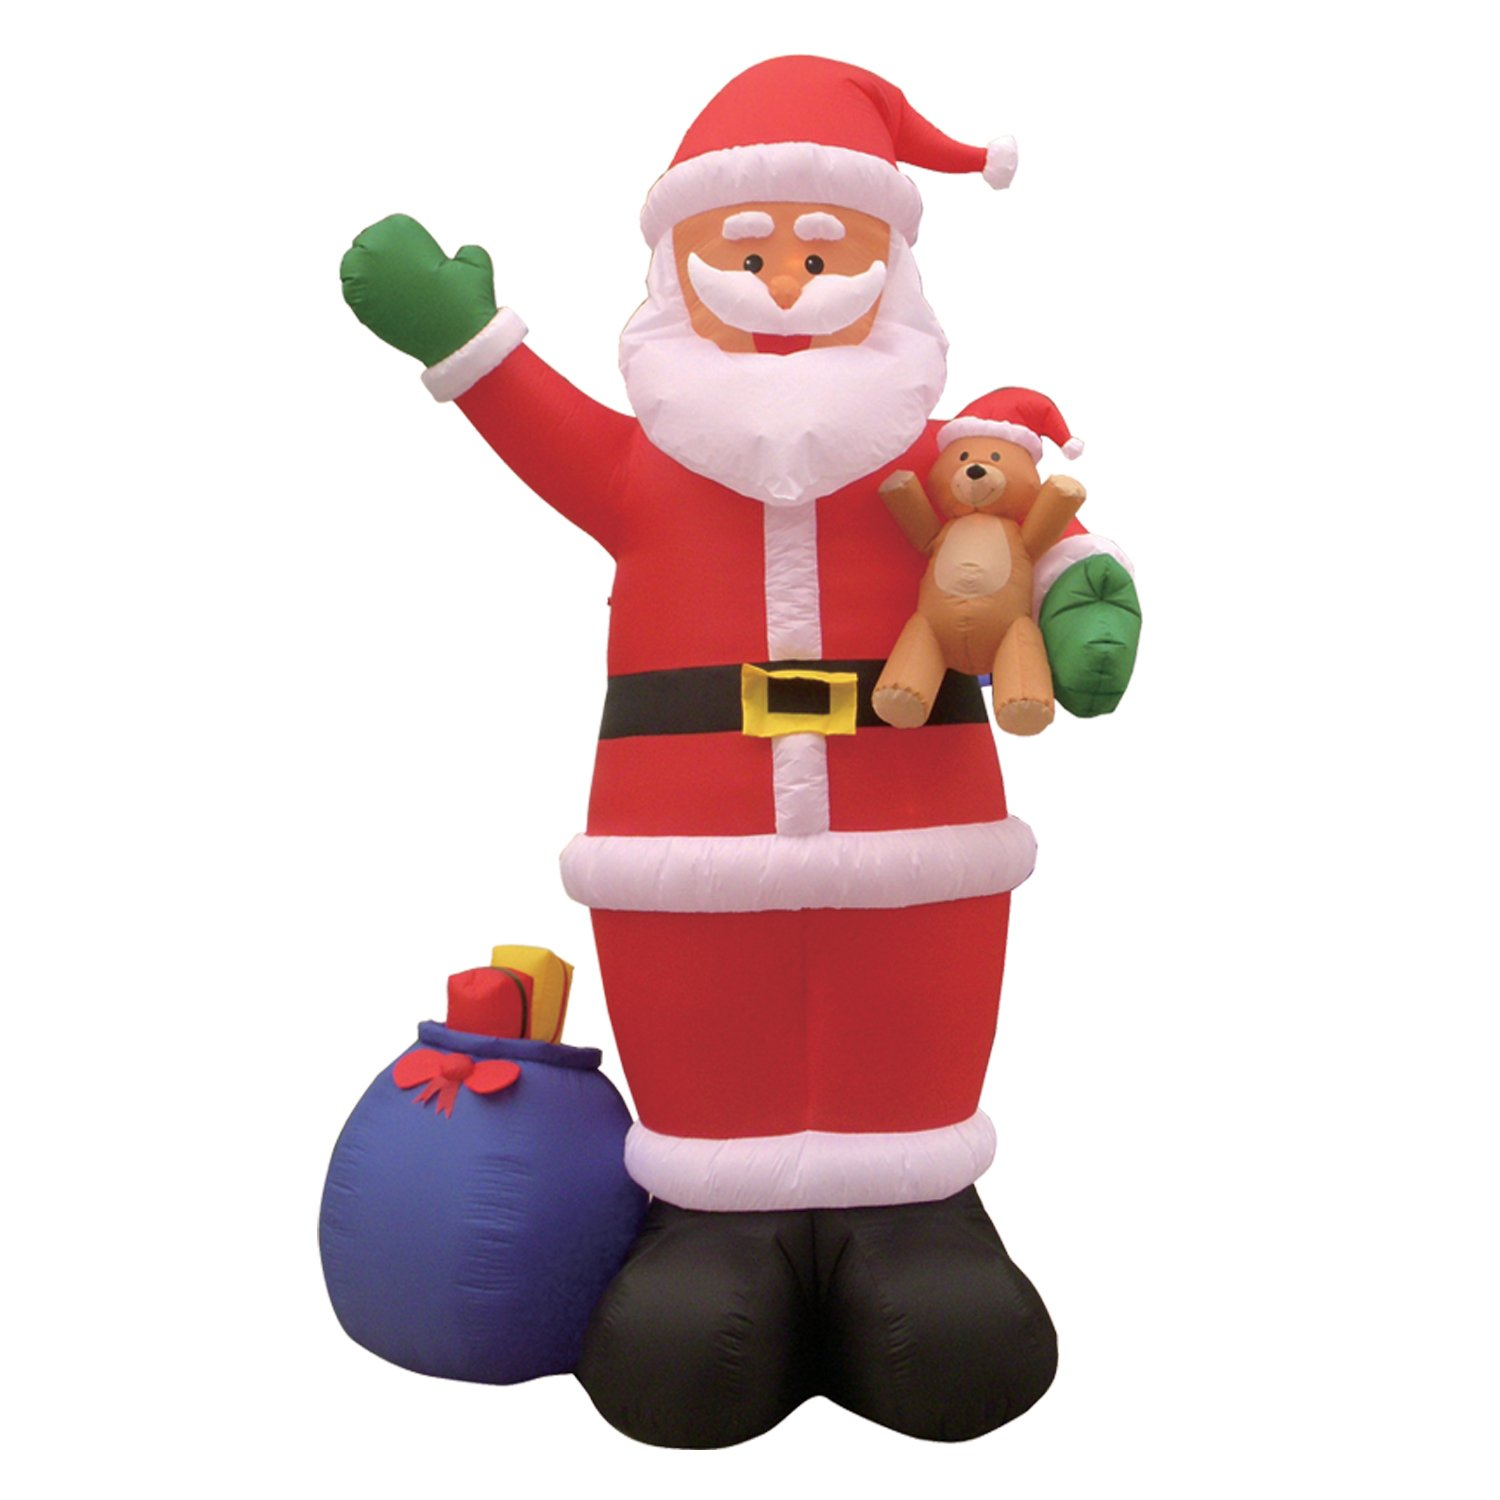 12 Foot Christmas Inflatable Santa Claus with Gift Bag and Bear Yard Garden Decoration by BZB Goods